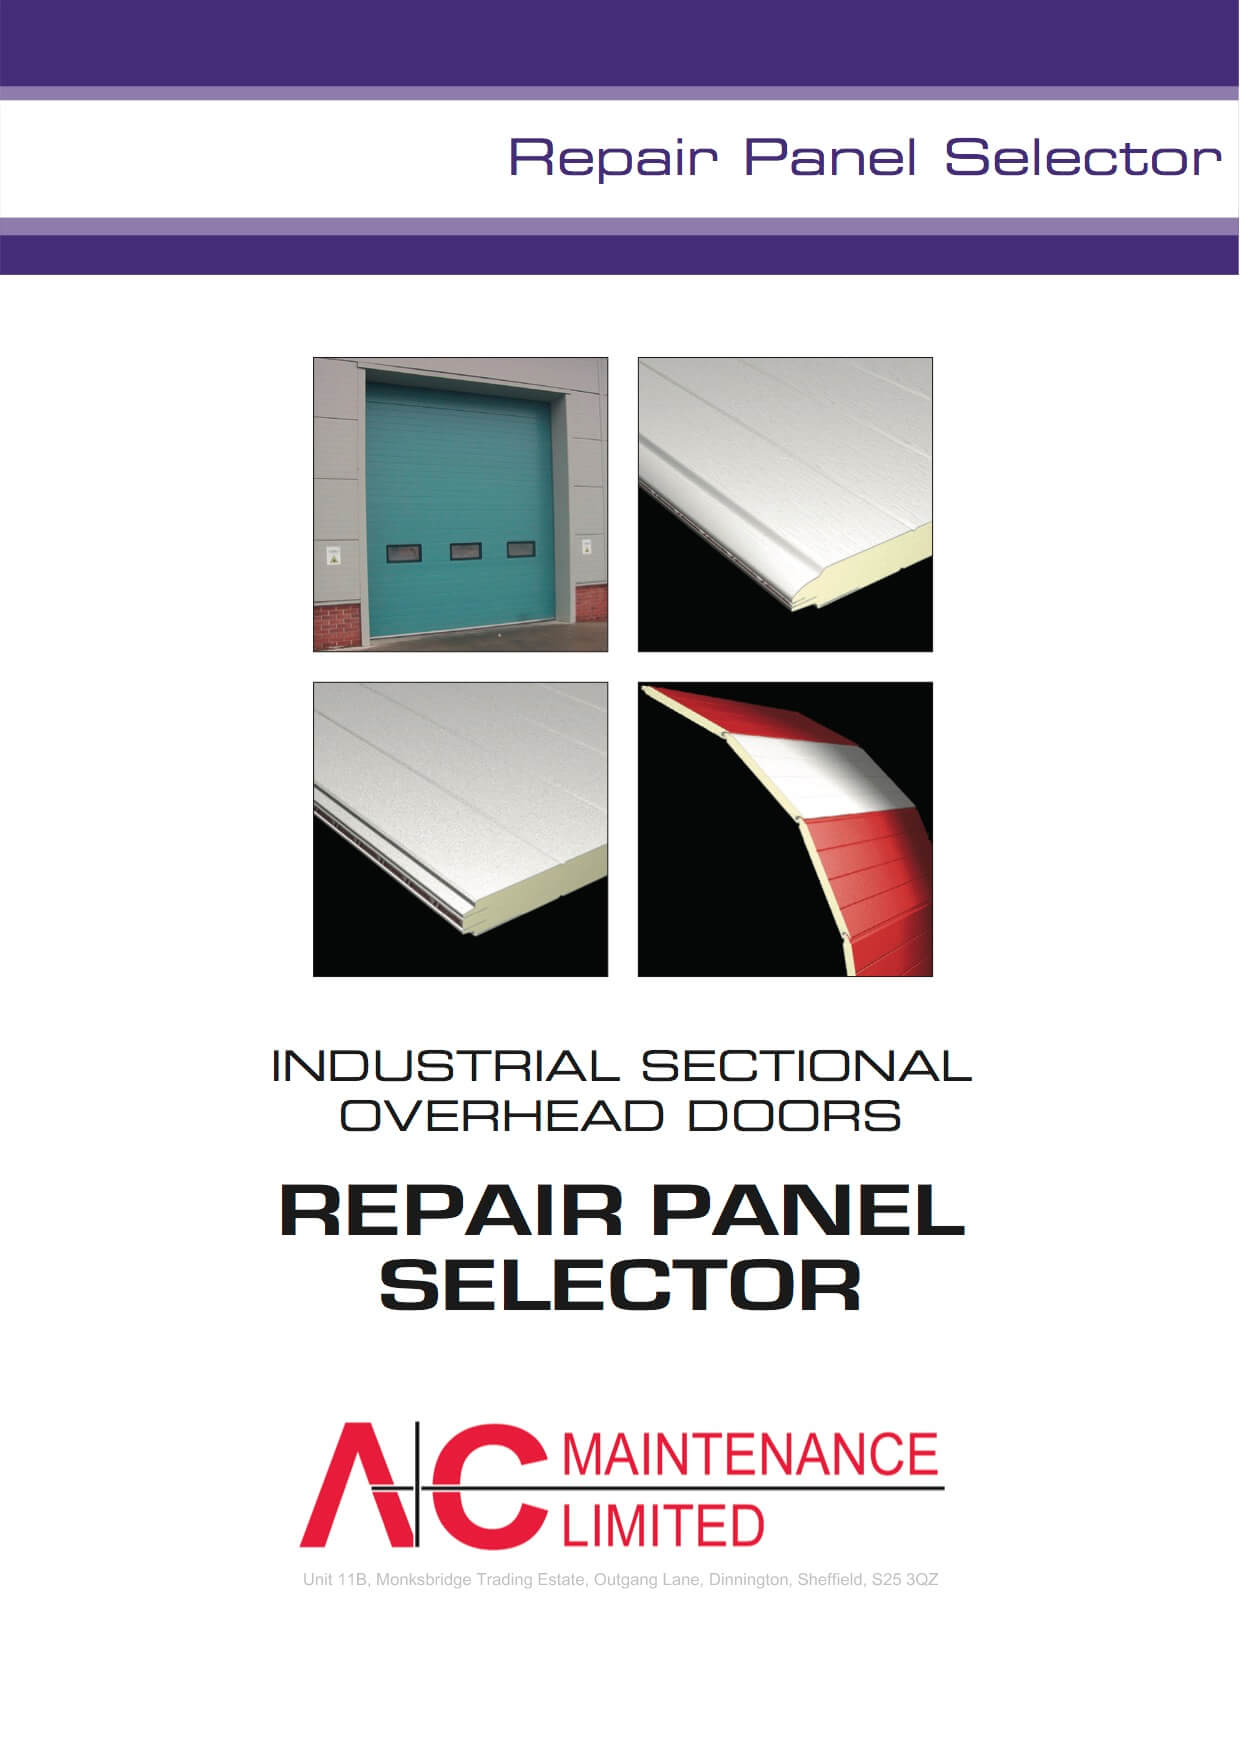 http://www.aandcmaintenance.co.uk/wp-content/uploads/Repair-Panel-Selector.jpg